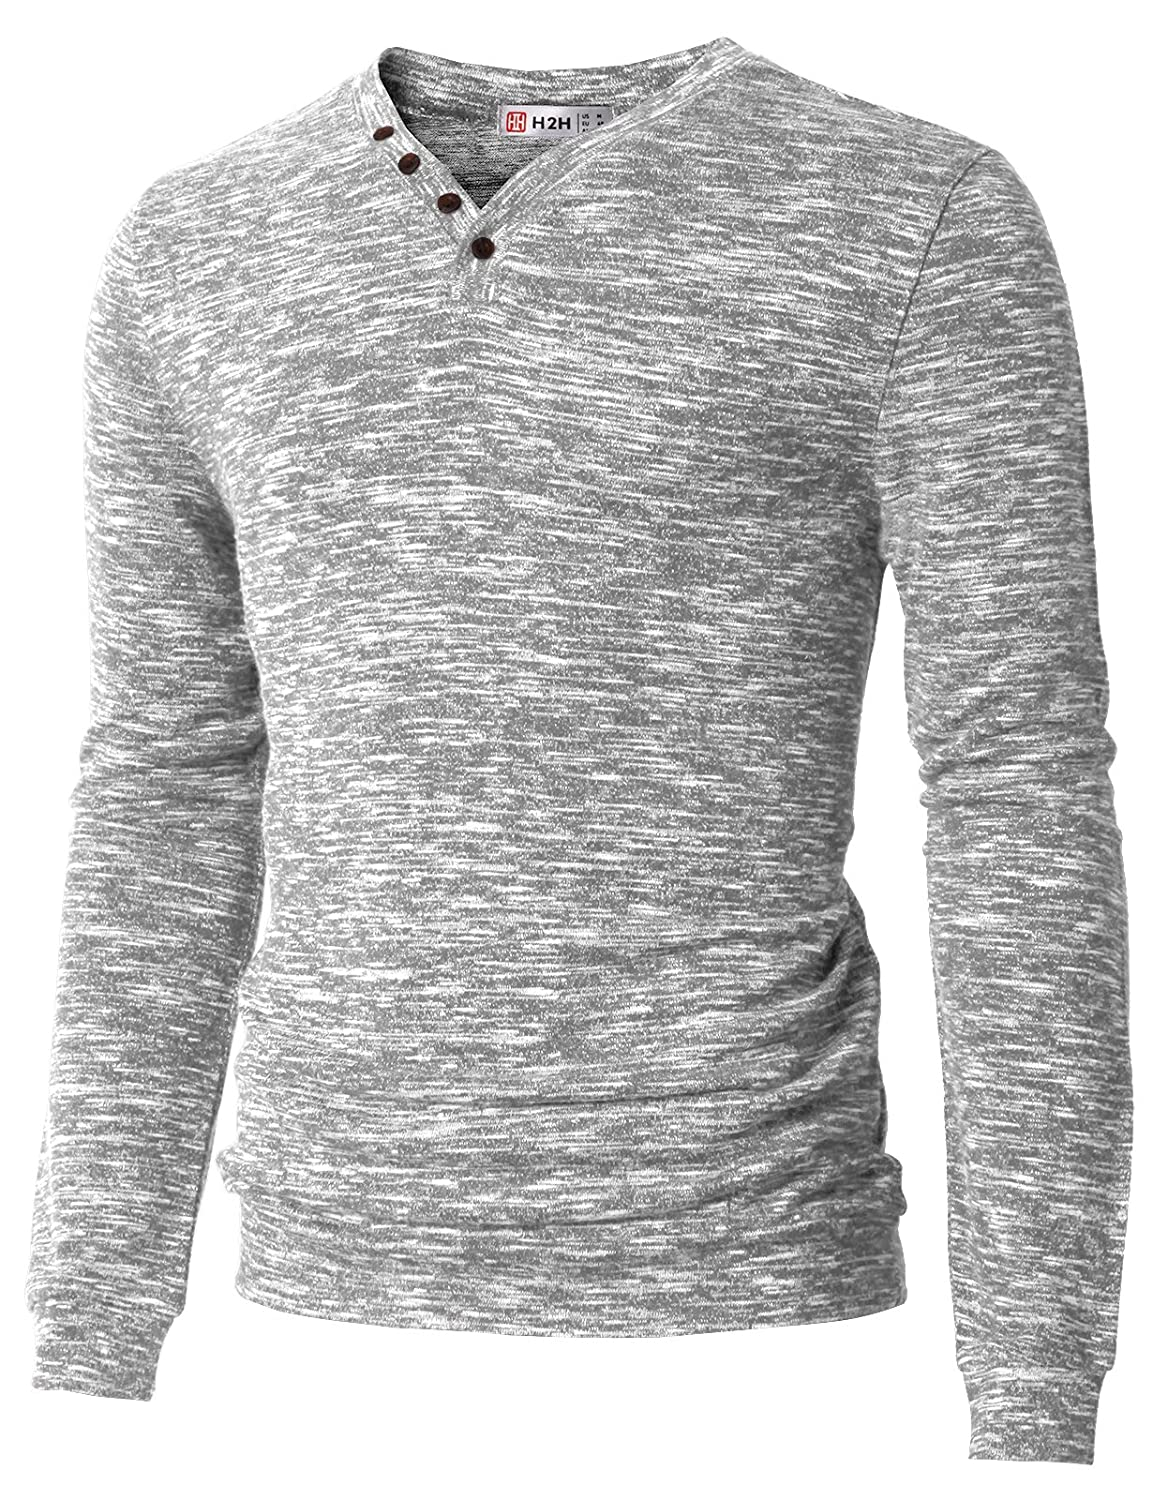 H2H Men's Casual Long Sleeve Tops V-Neck With Buttons T-Shirt #CMOSWL019